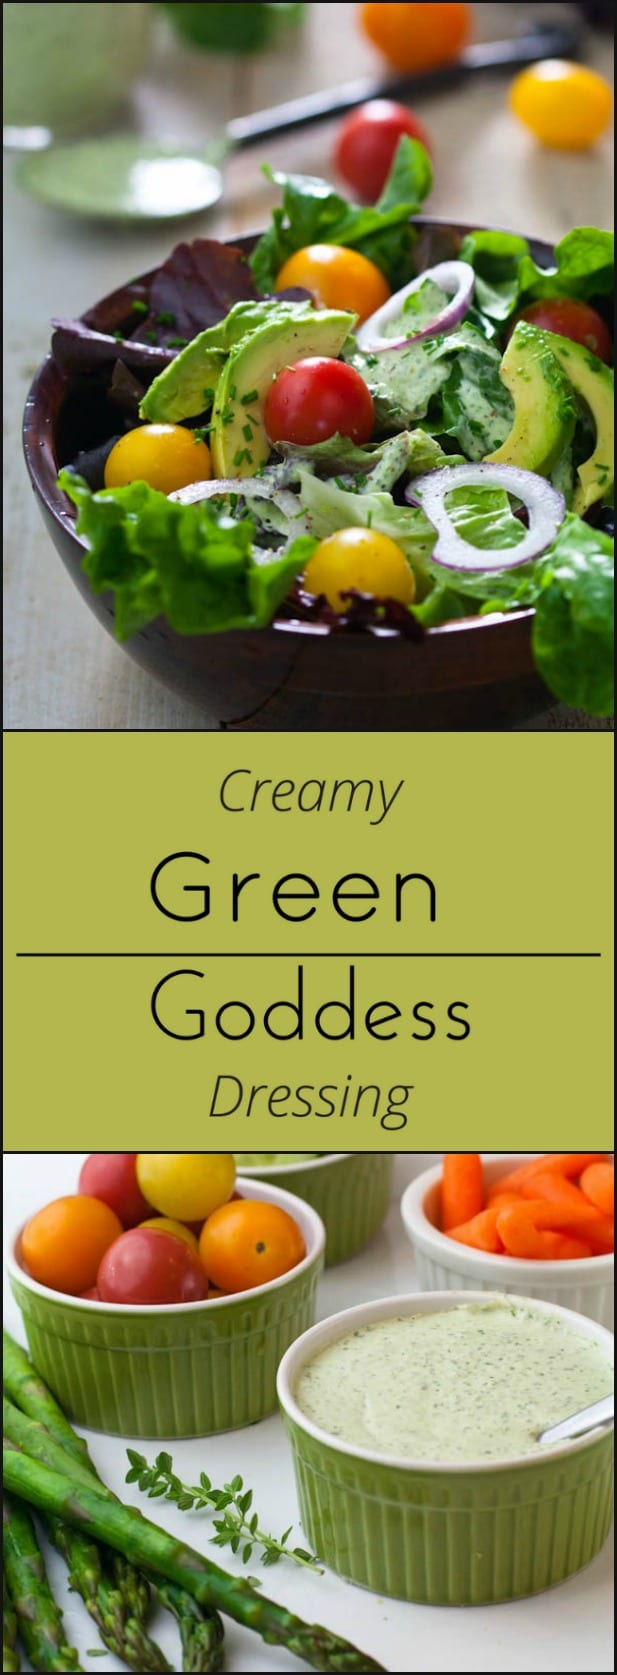 Green Goddess Dressing is easy to make, low carb and gluten free!